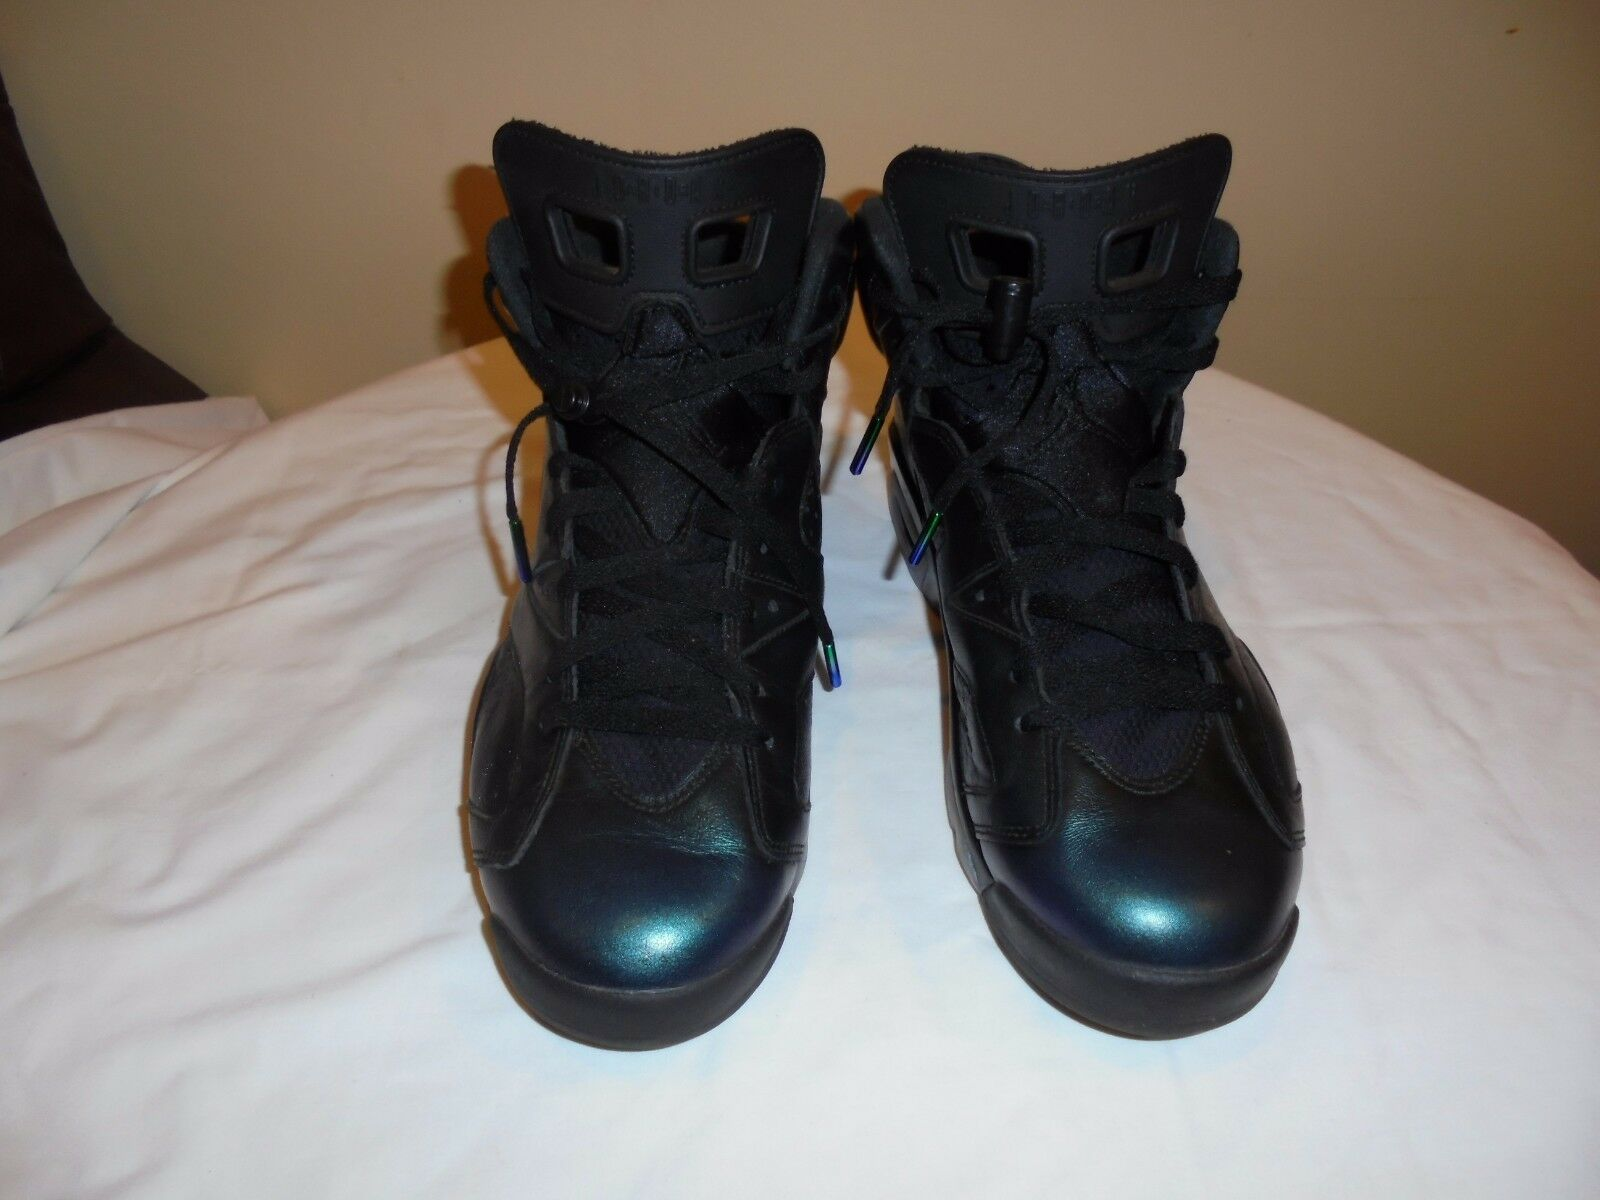 AIR JORDAN RETRO 6 ALL STAR CHAMELEON MID MENS BASKETBALL SHOE SIZE 12 Comfortable and good-looking